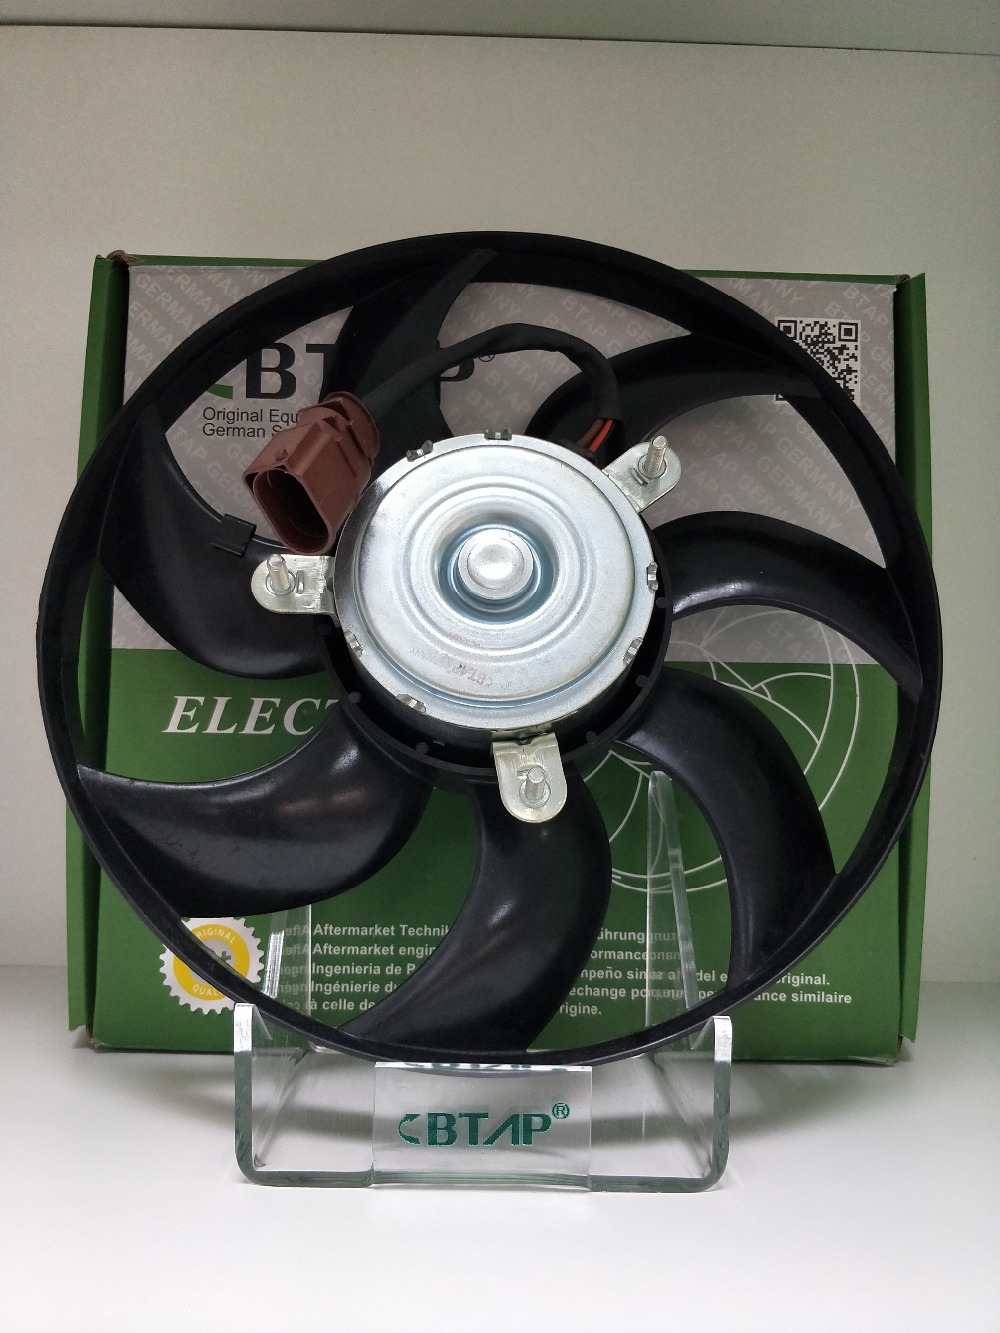 BTAP German Specification Original Equipment Quality Radiator Cooling Fan Assembly For AUDI A3 TT PASSAT TIGUAN GOLF 1K0959455DH radiator cooling fan relay control module for audi a6 c6 s6 4f0959501g 4f0959501c